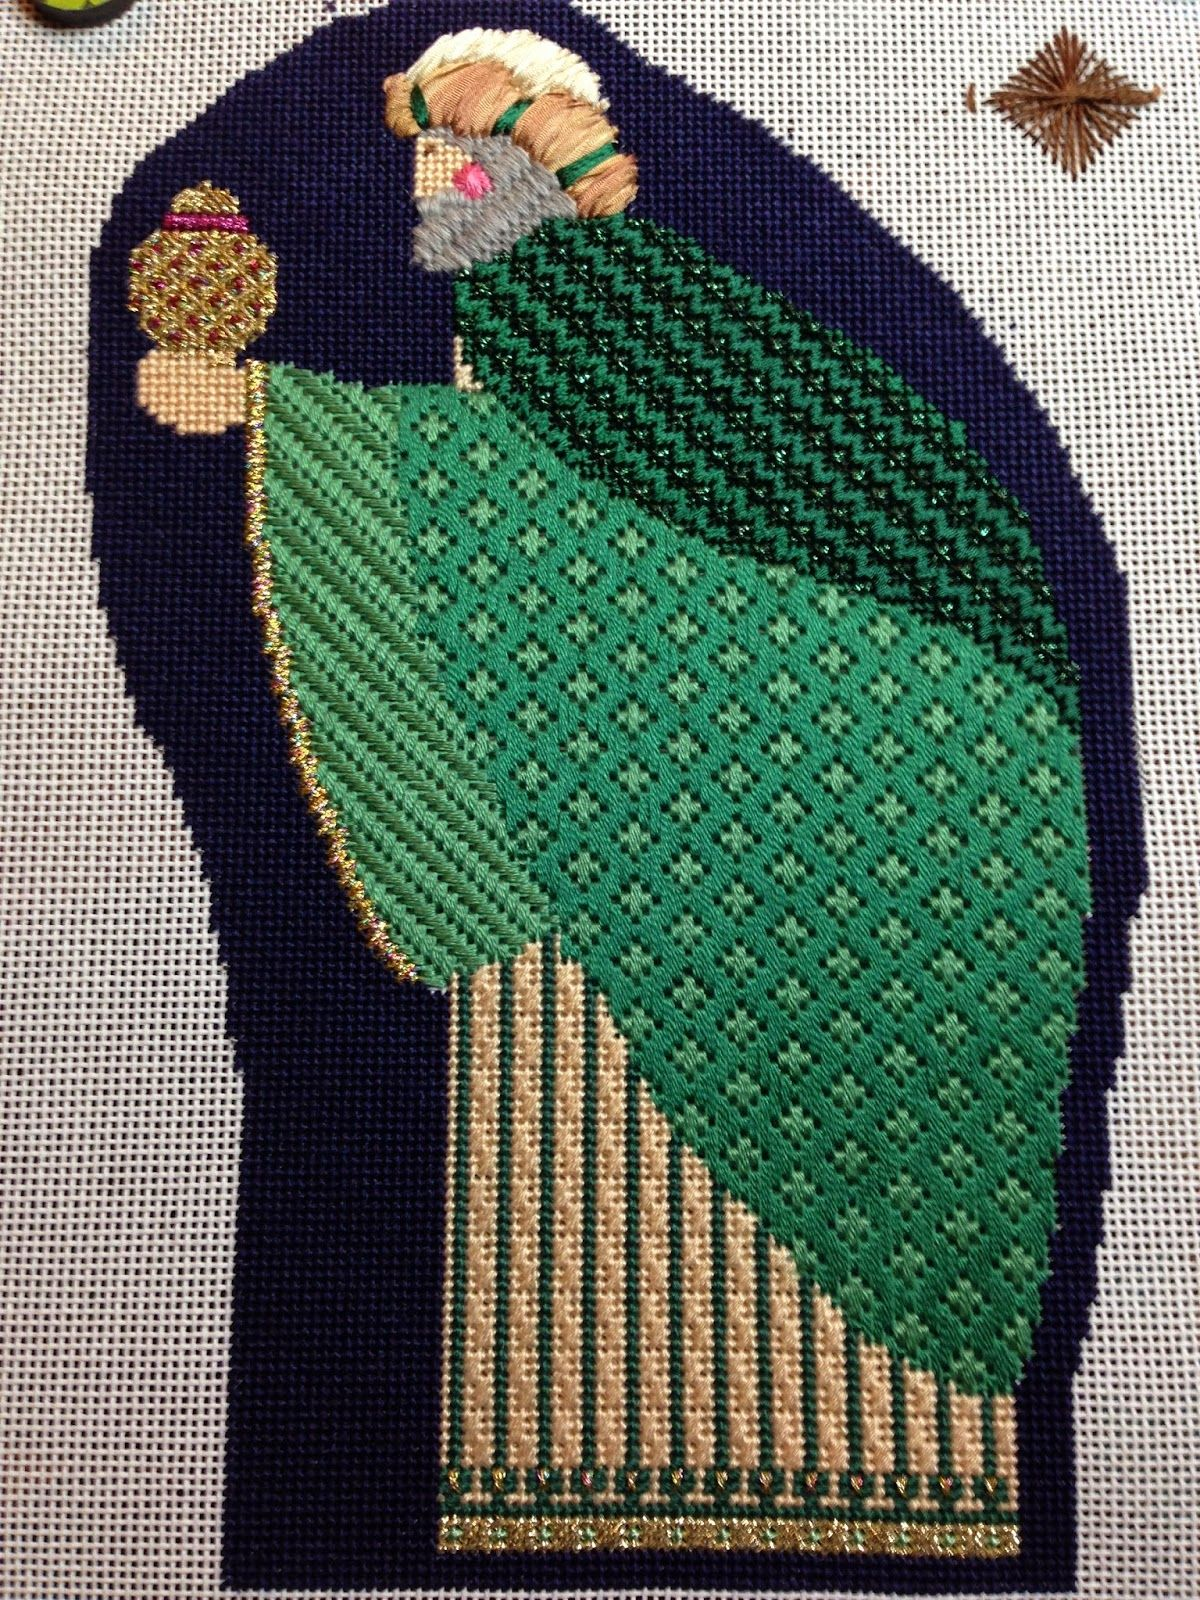 Steph S Stitching Green Magi From Heartstrings Designs